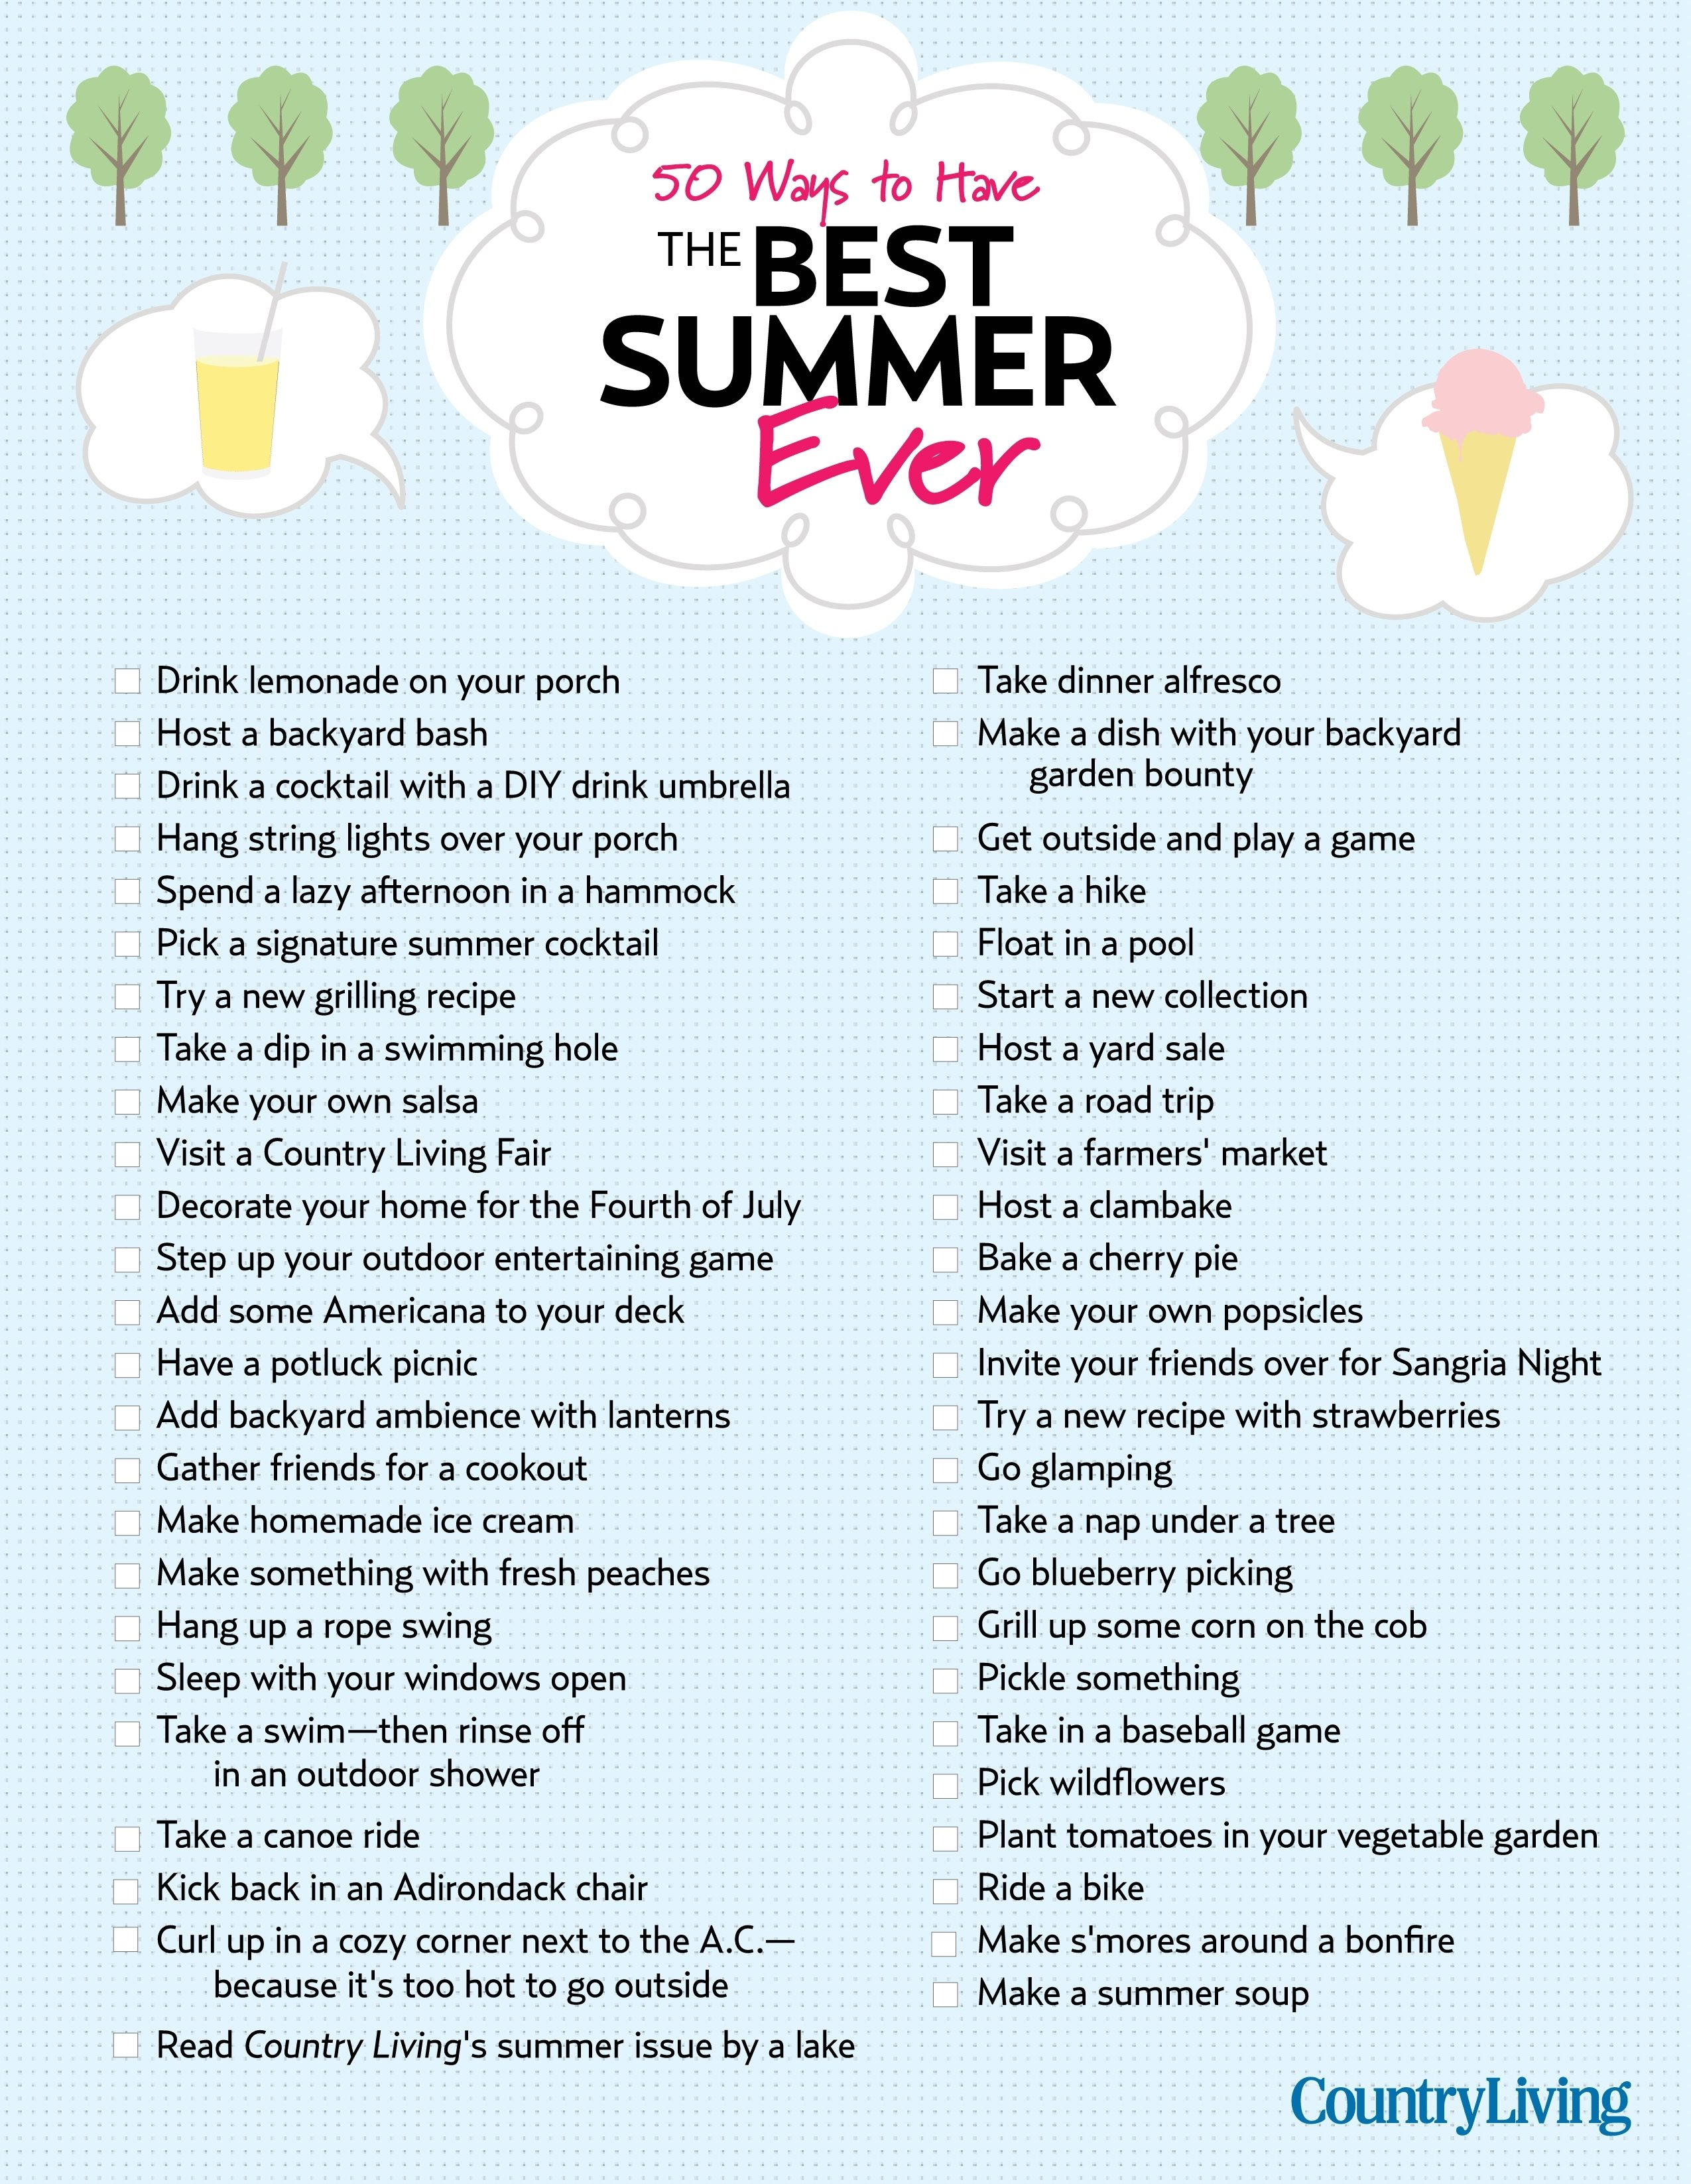 10 Fashionable Fun Ideas To Do With Friends 55 ways to have the best summer ever summer bucket lists fun